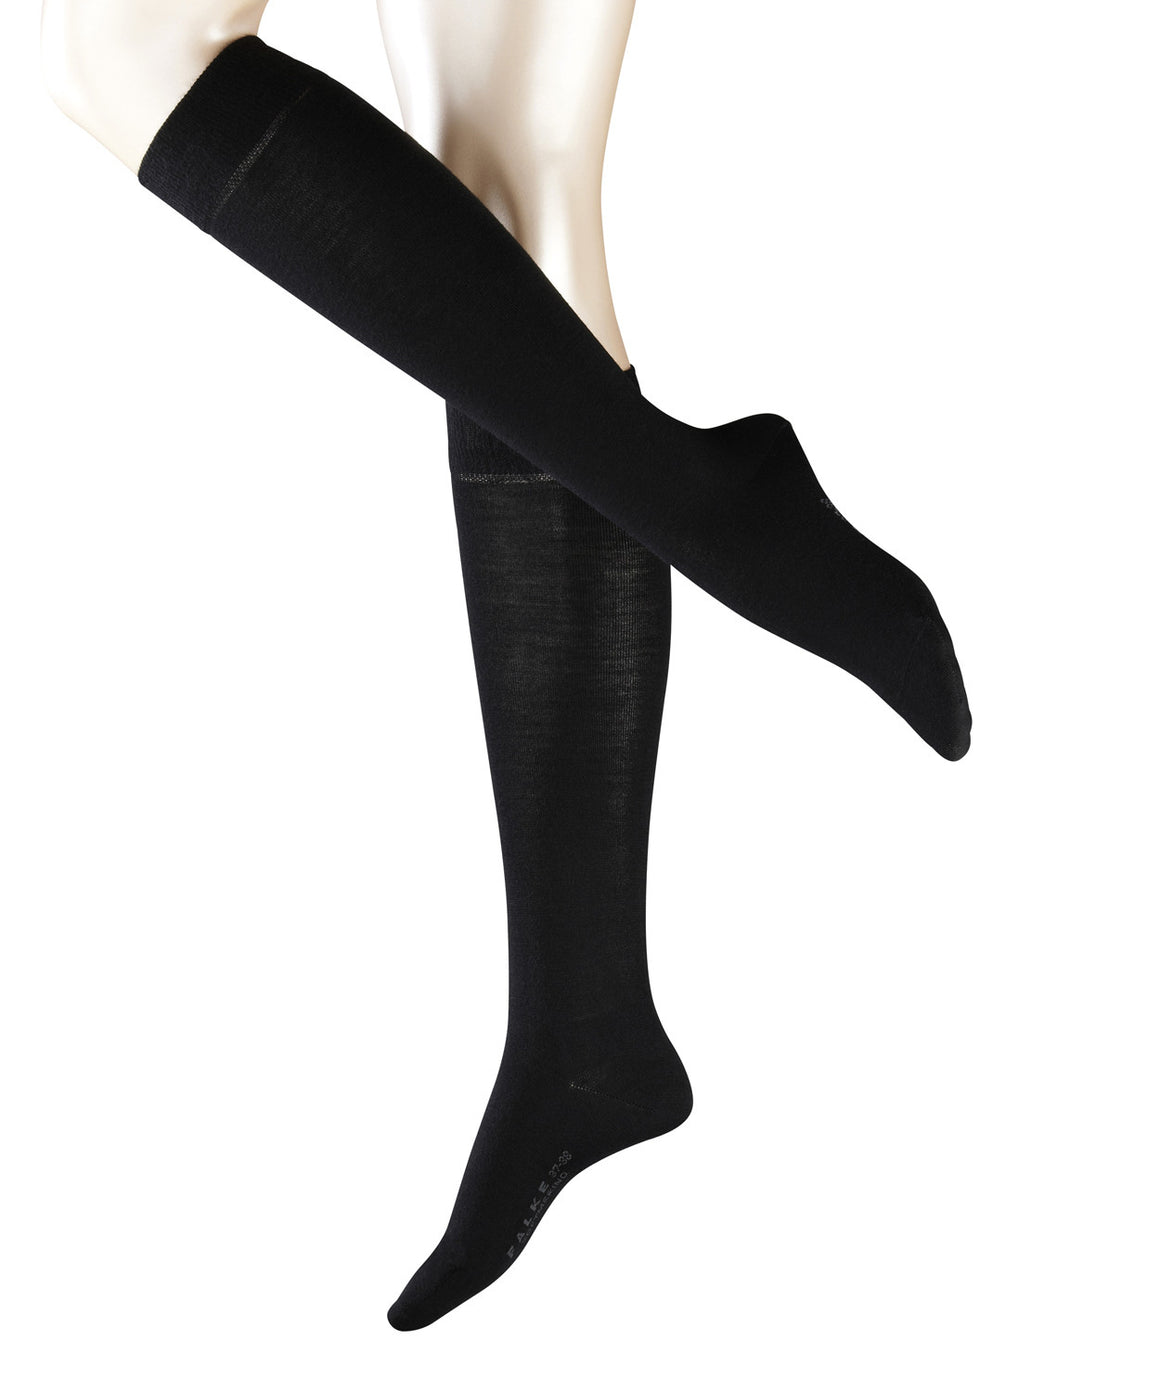 Falke Womens Soft Merino Knee High - Black